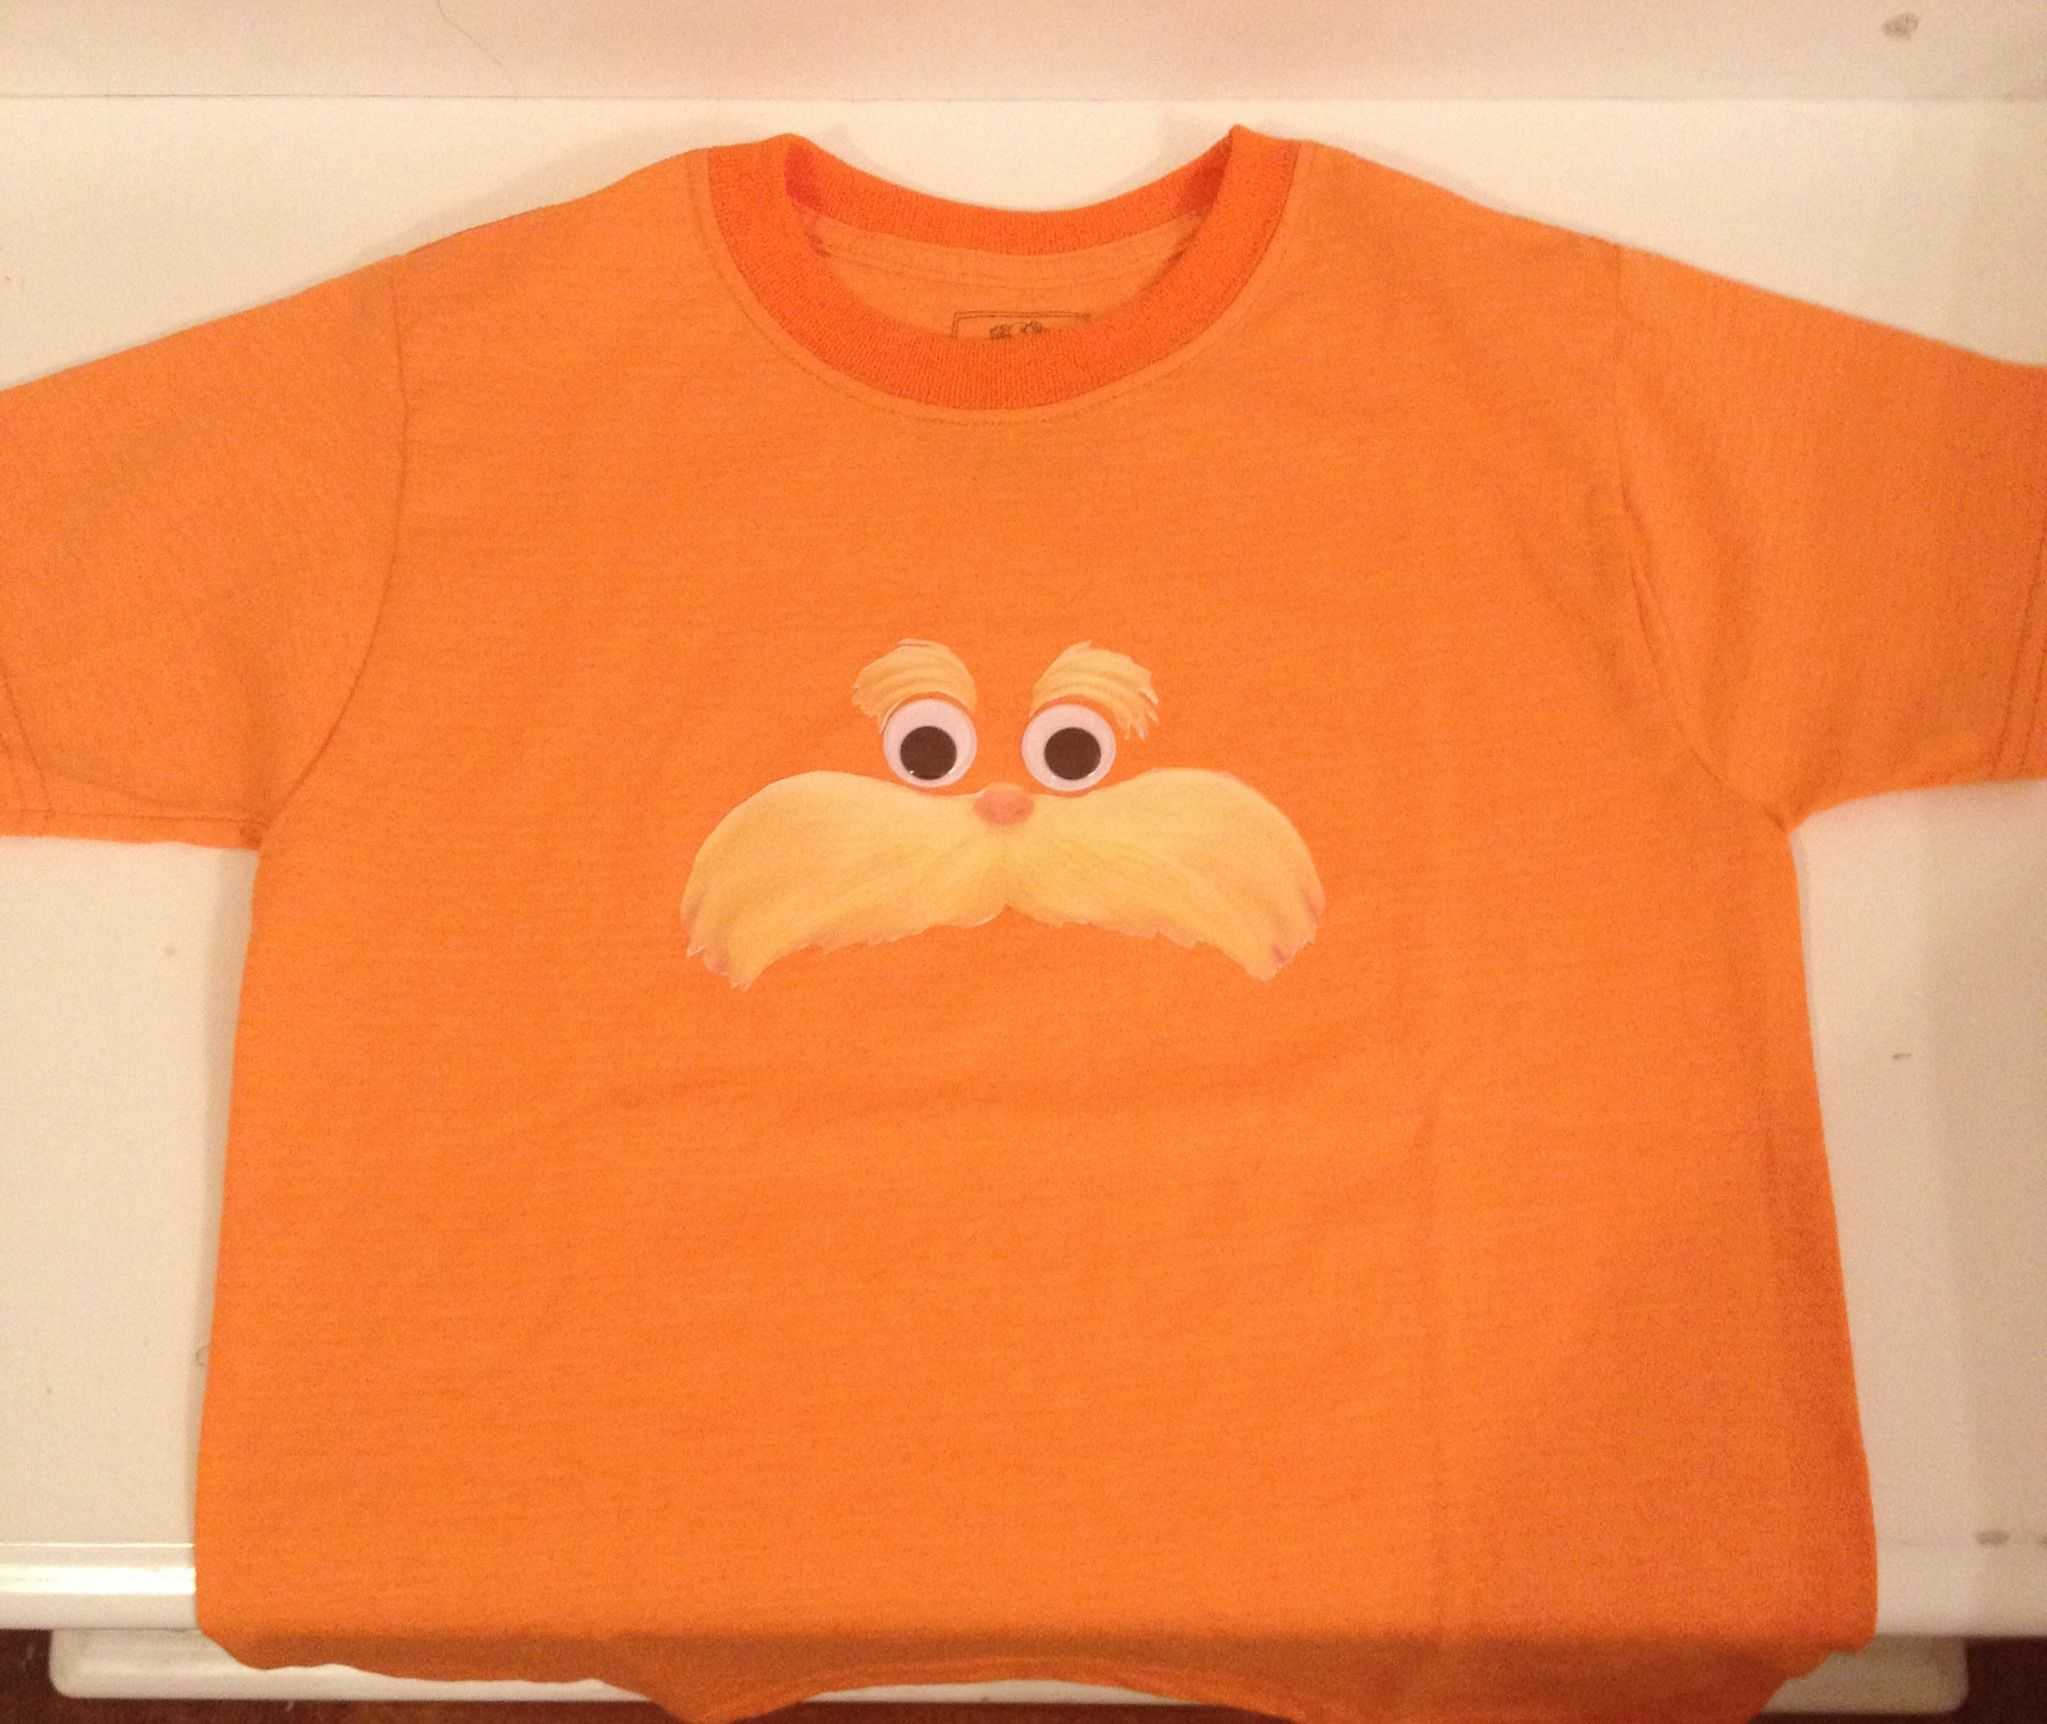 Black t shirt at walmart - Lorax Tshirt For Dr Seuss Day Only 3 At Walmart Then Printed Out The Mustache